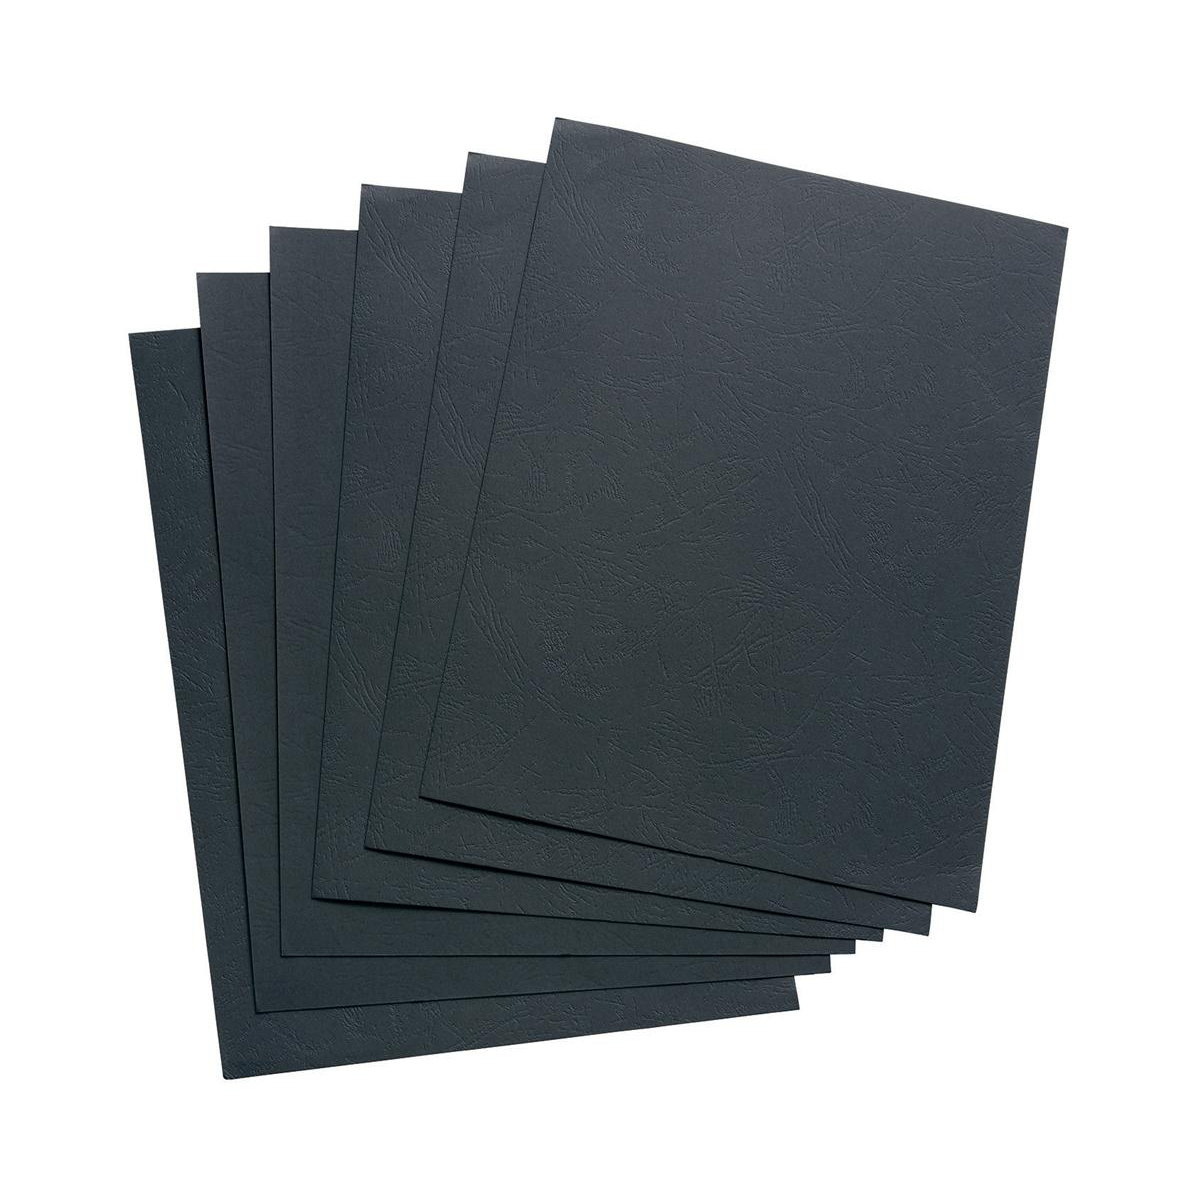 Cover Boards 5 Star Office Binding Covers 240gsm Leathergrain A4 Black Pack 100